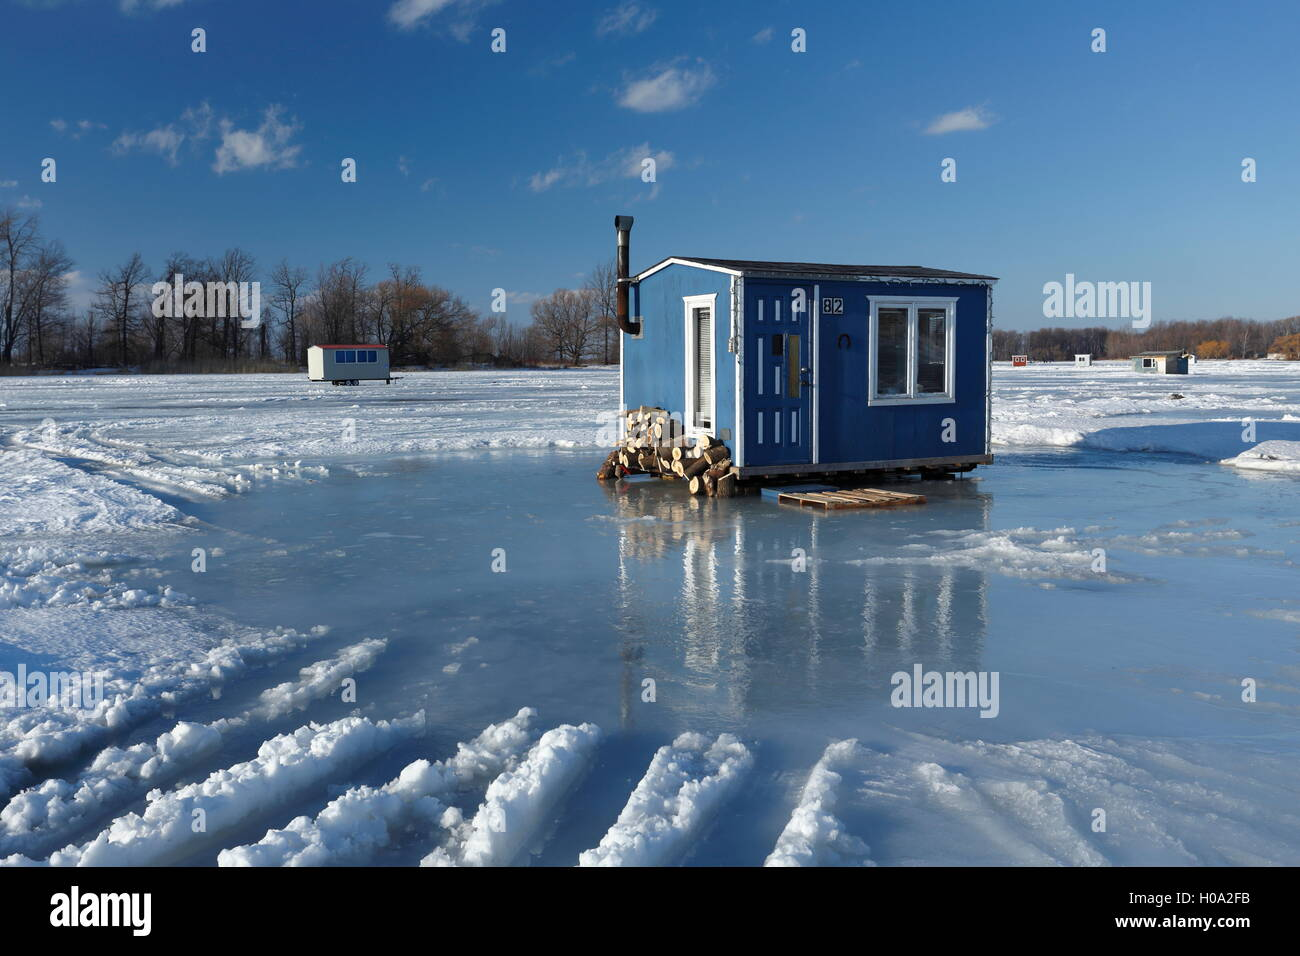 Canada log cabins snow stock photos canada log cabins for Ice fishing cabins alberta